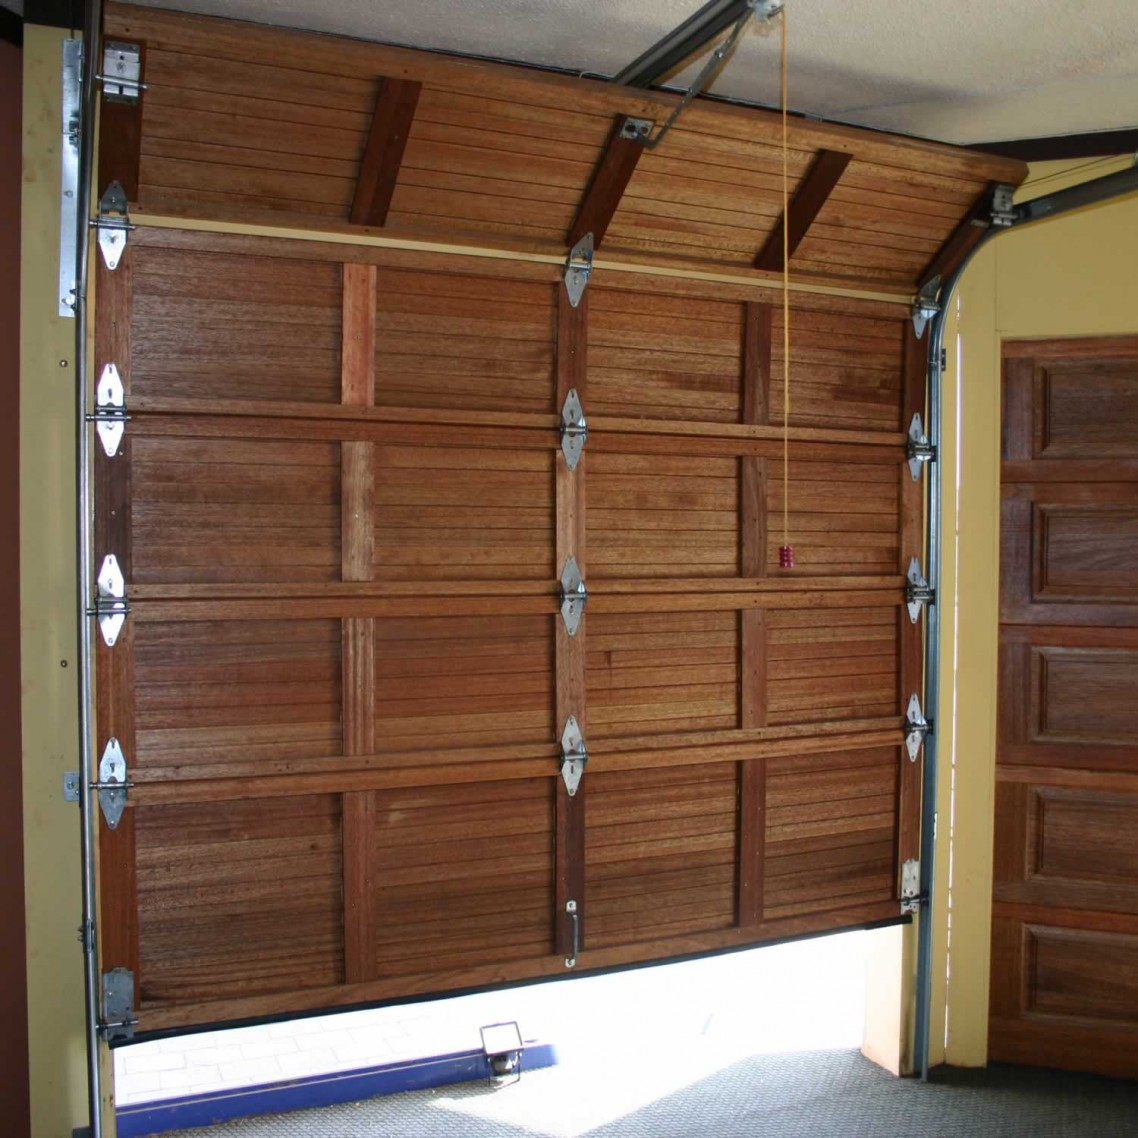 Blog north hollywood garage door repair for Garage door opens on its own